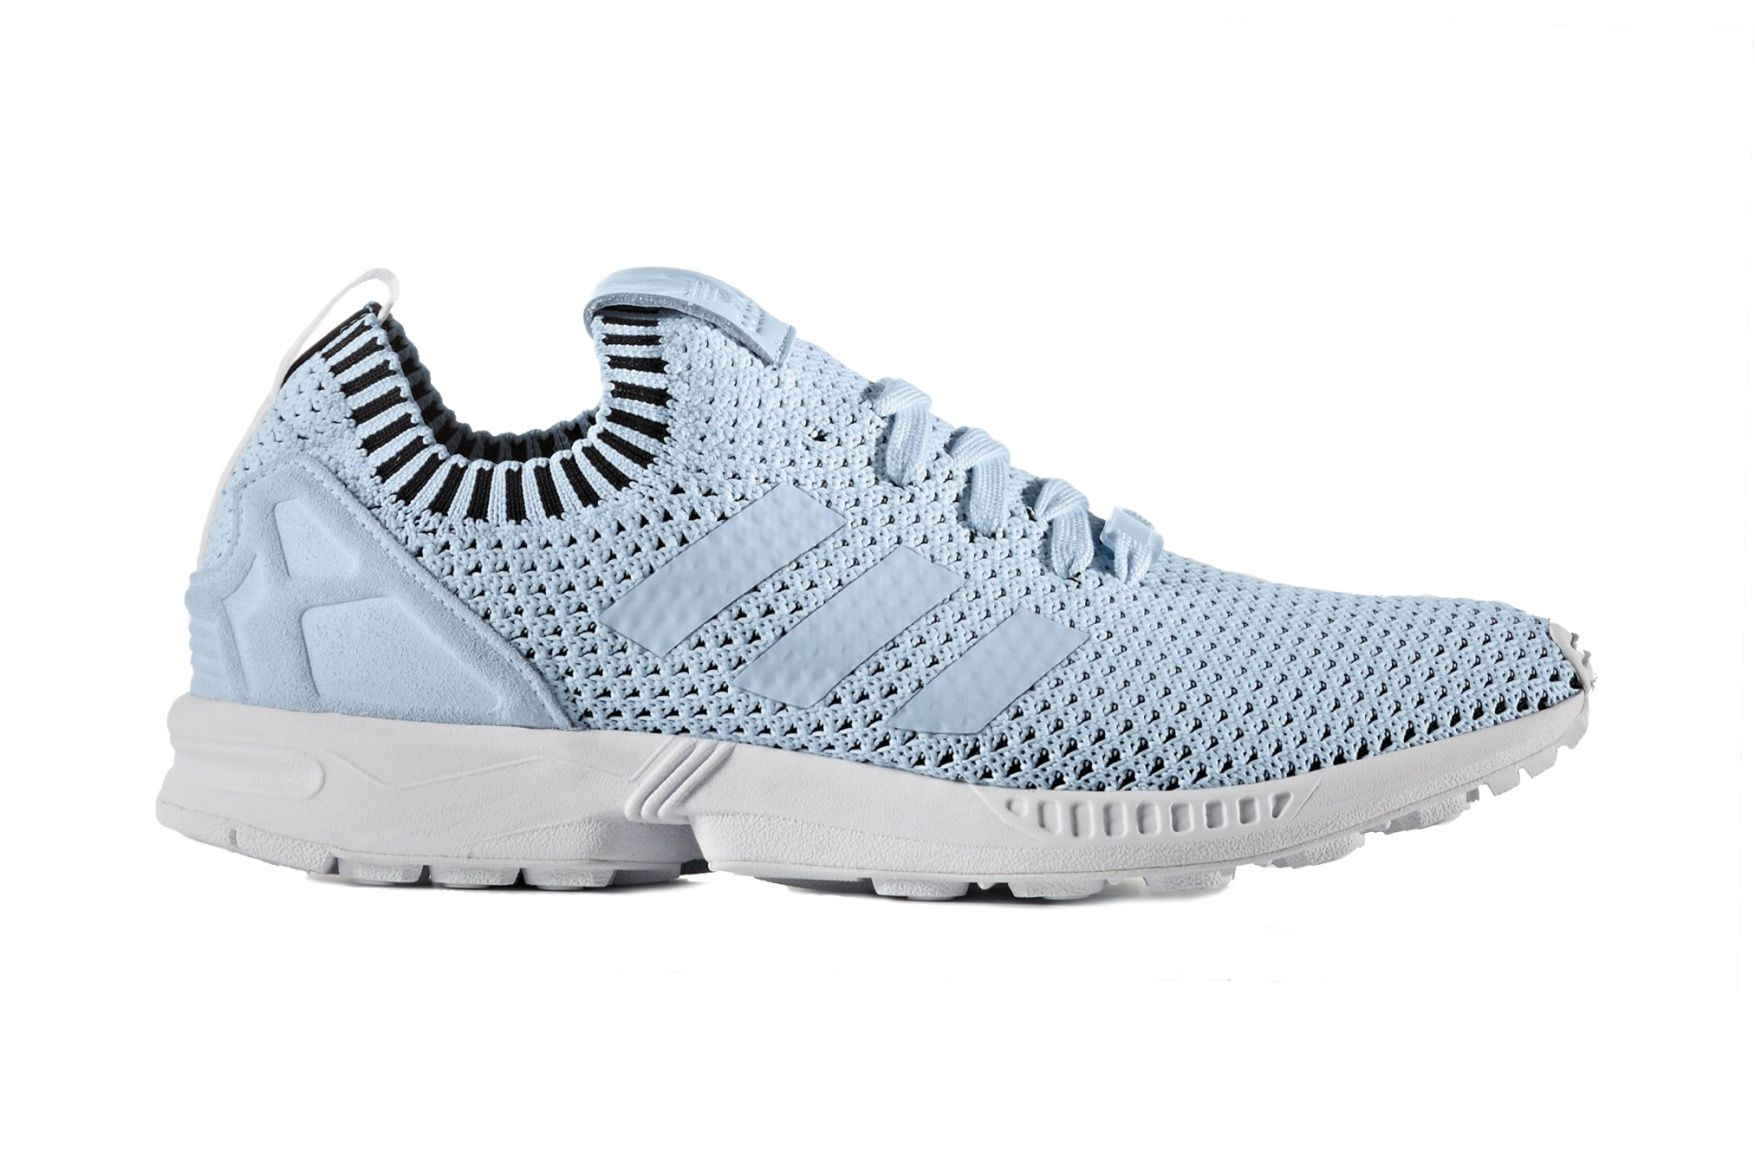 f62b56321 ... top quality adidas drops a baby blue zx flux sneaker with primeknit  9b763 5890a